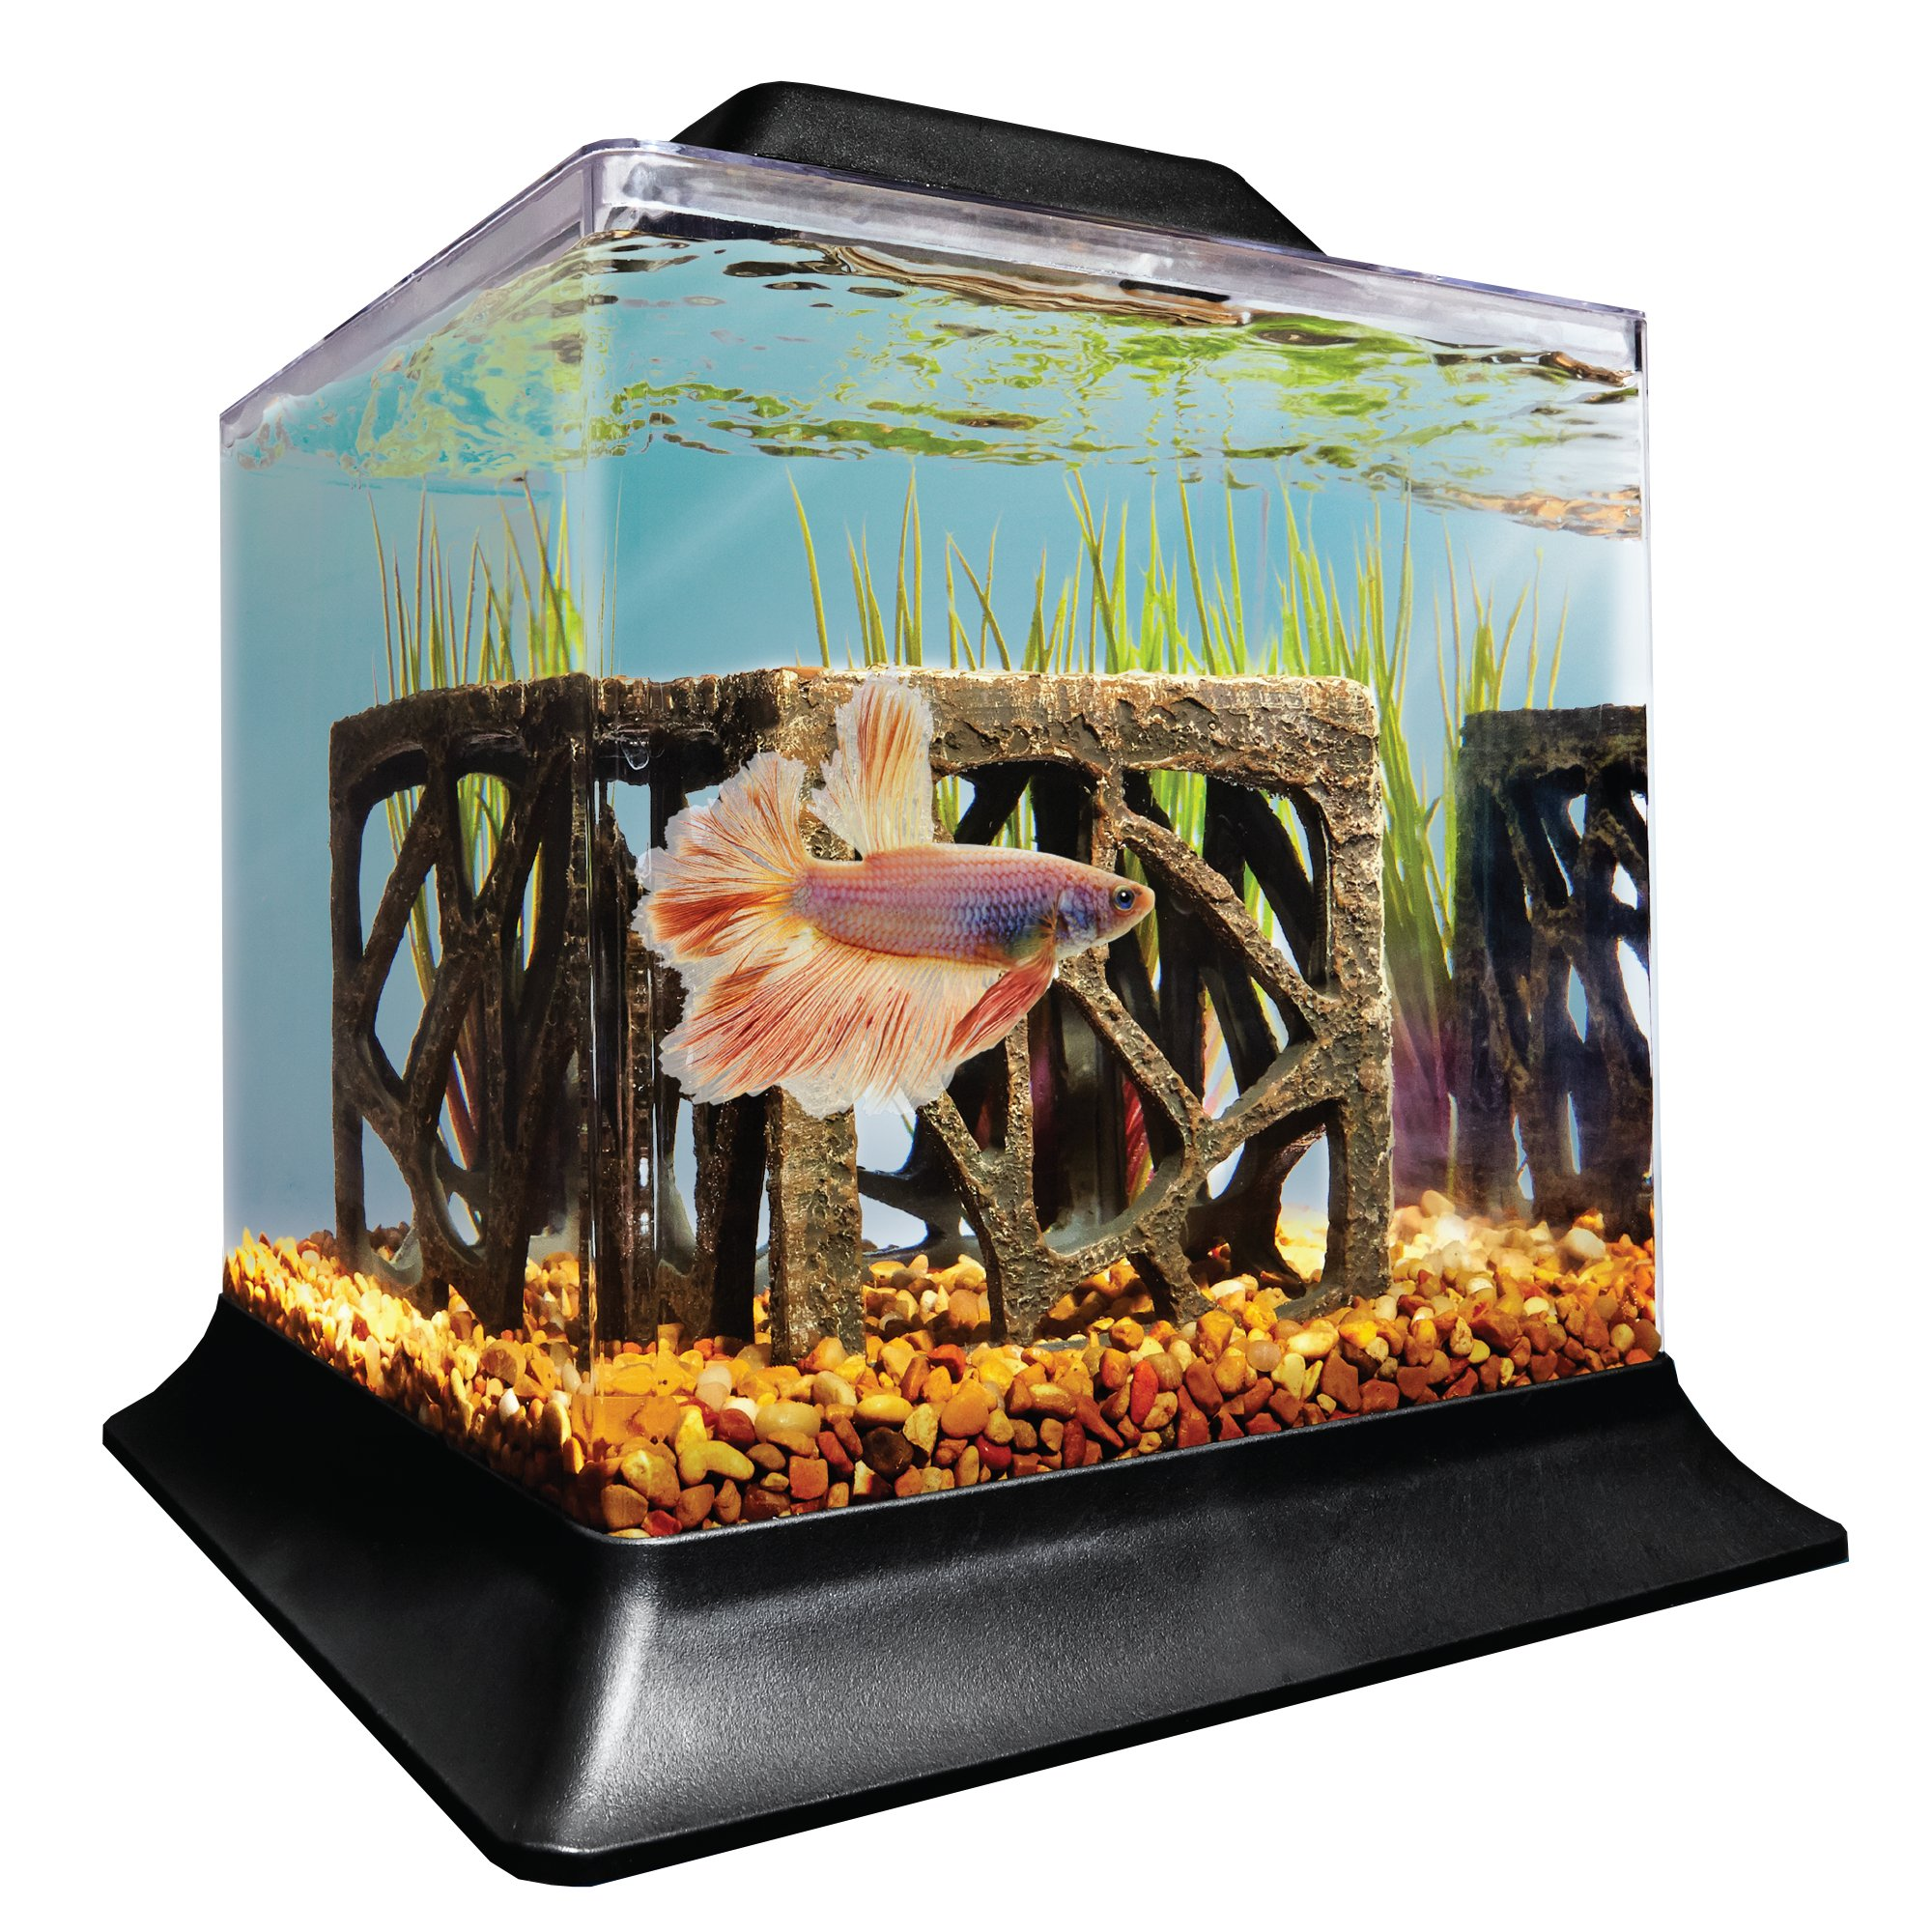 Imagitarium betta aquarium petco store for Betta fish tanks petco